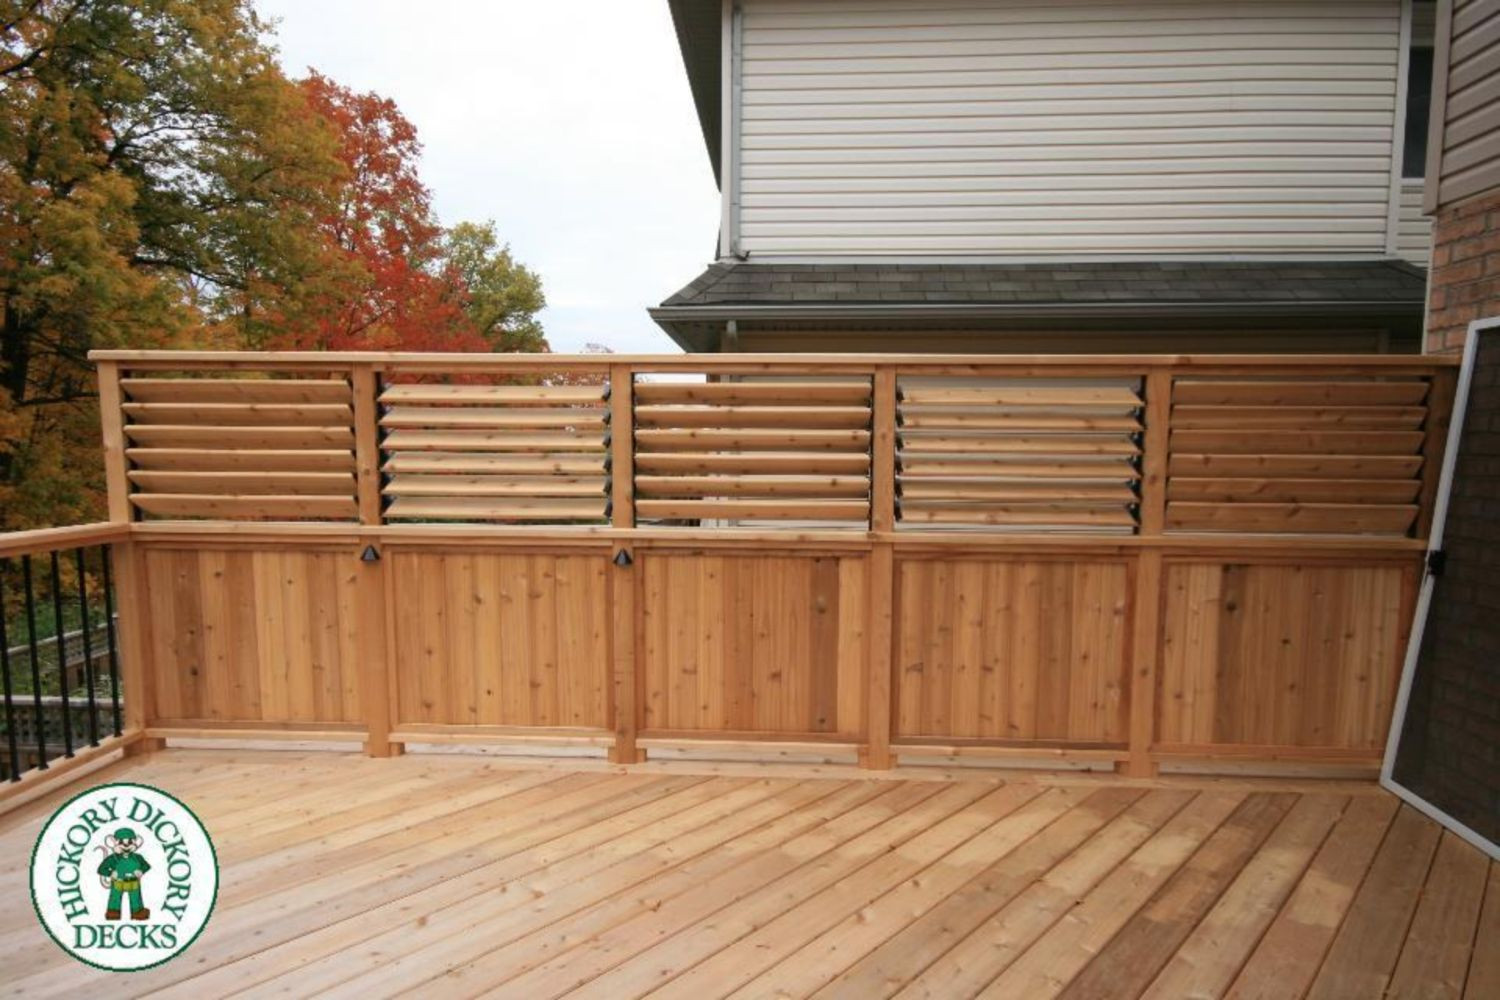 Best ideas about Cheap Fence DIY . Save or Pin 60 Cheap DIY Privacy Fence Ideas Wartaku Now.